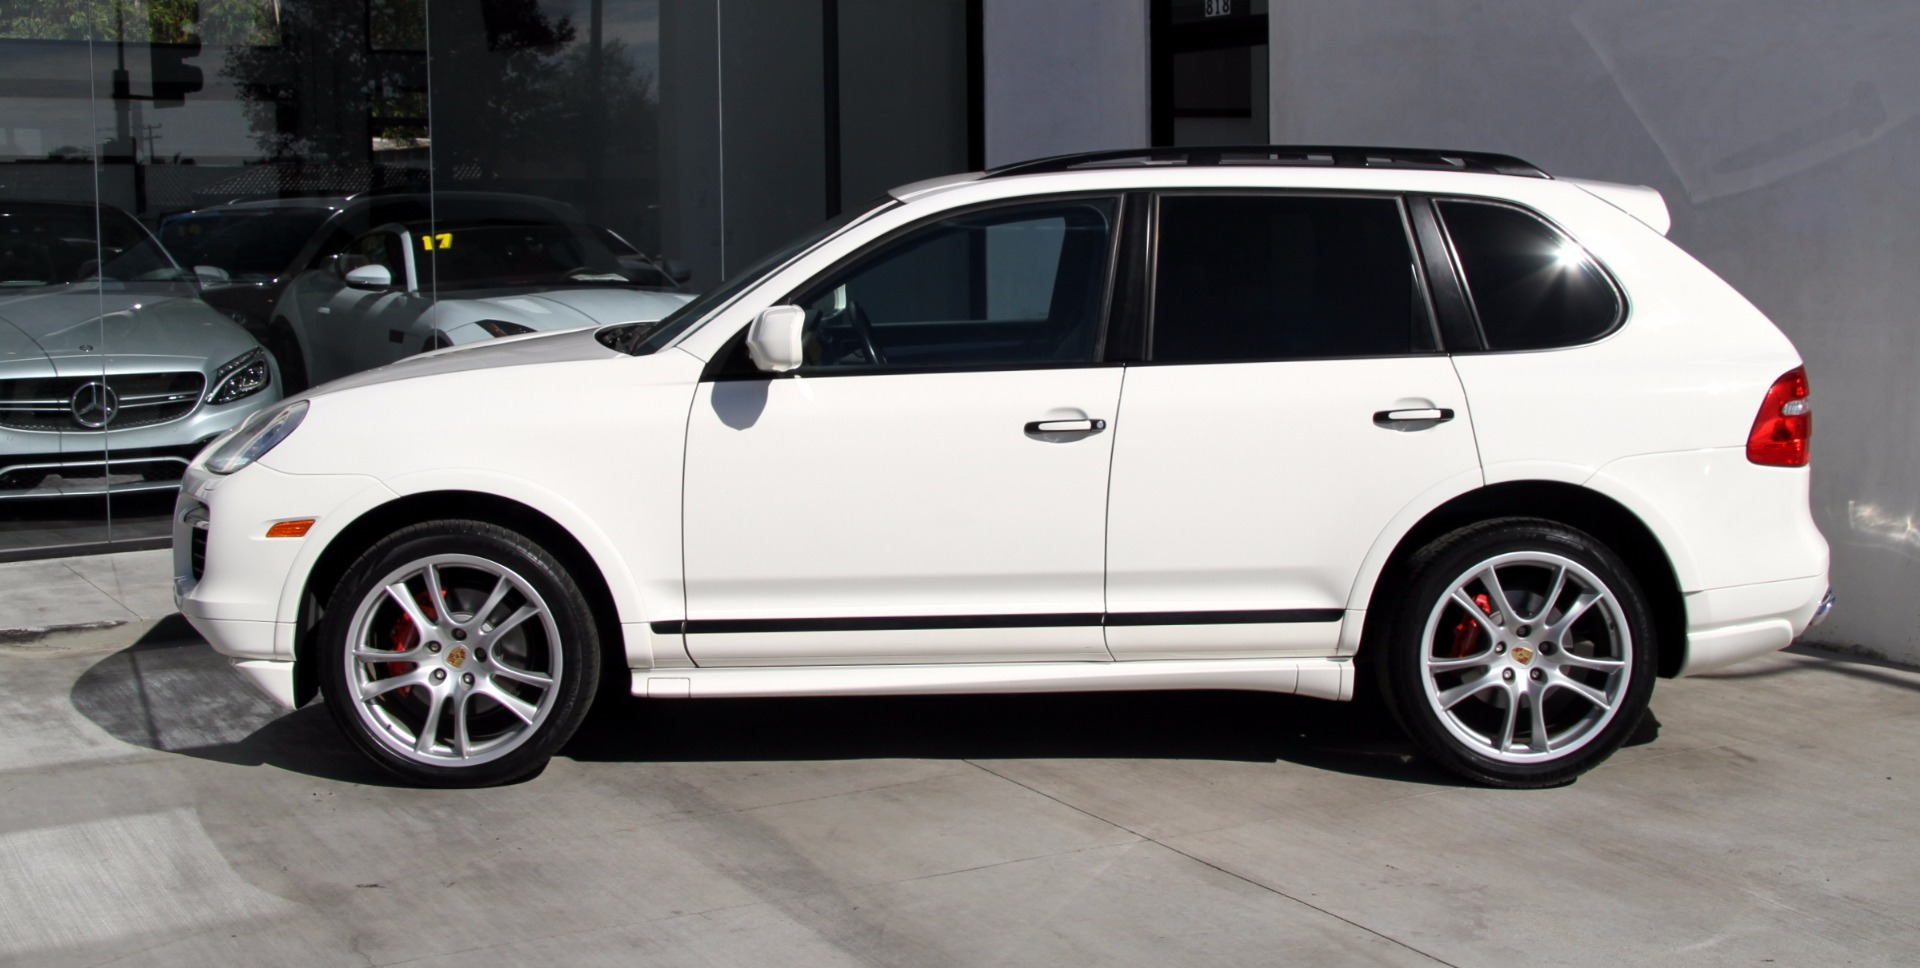 Free Vehicle History Report By Vin >> 2009 Porsche Cayenne GTS Stock # 6024 for sale near ...